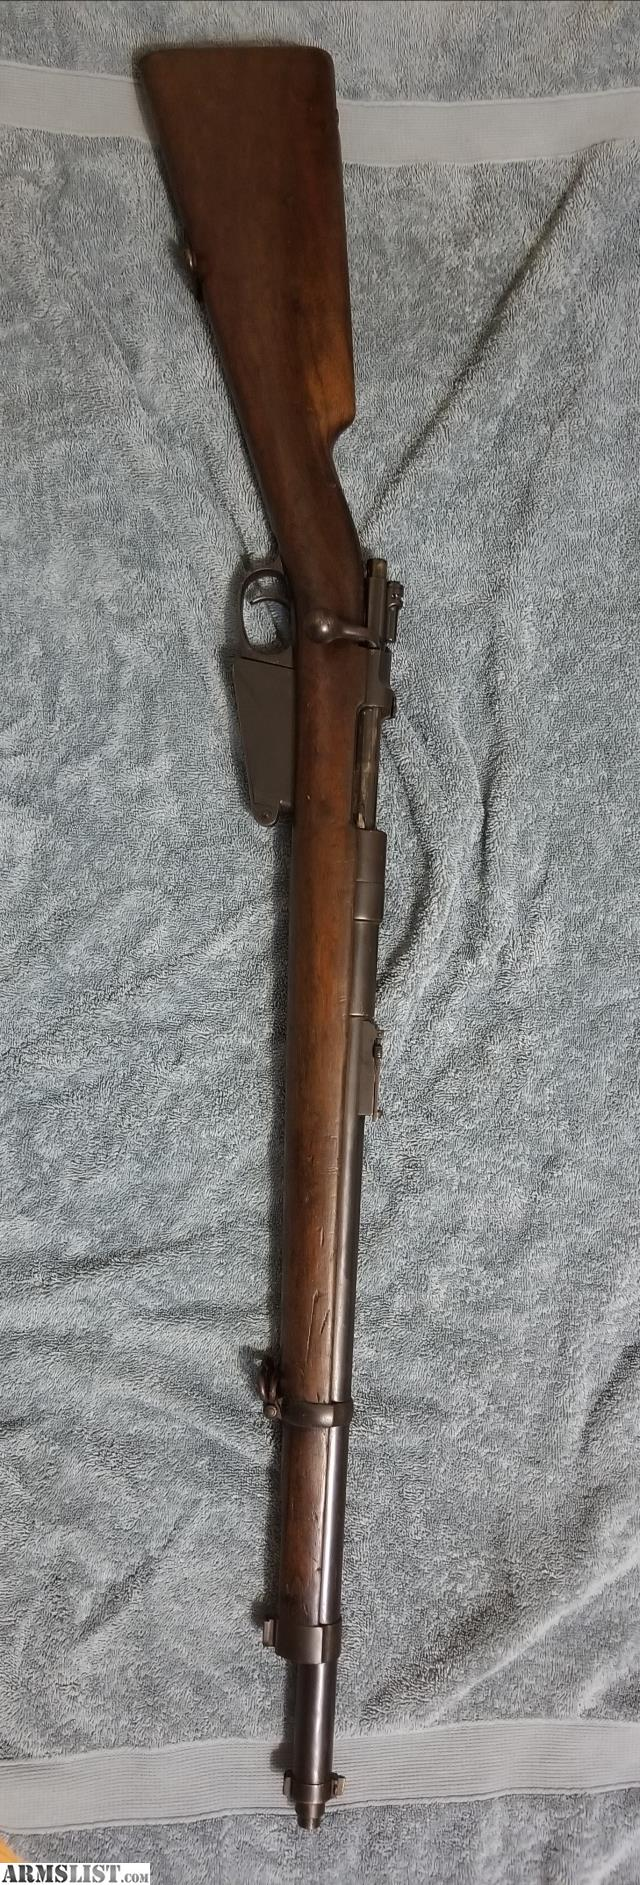 ARMSLIST - For Sale/Trade: M1889 belgian mauser carbine